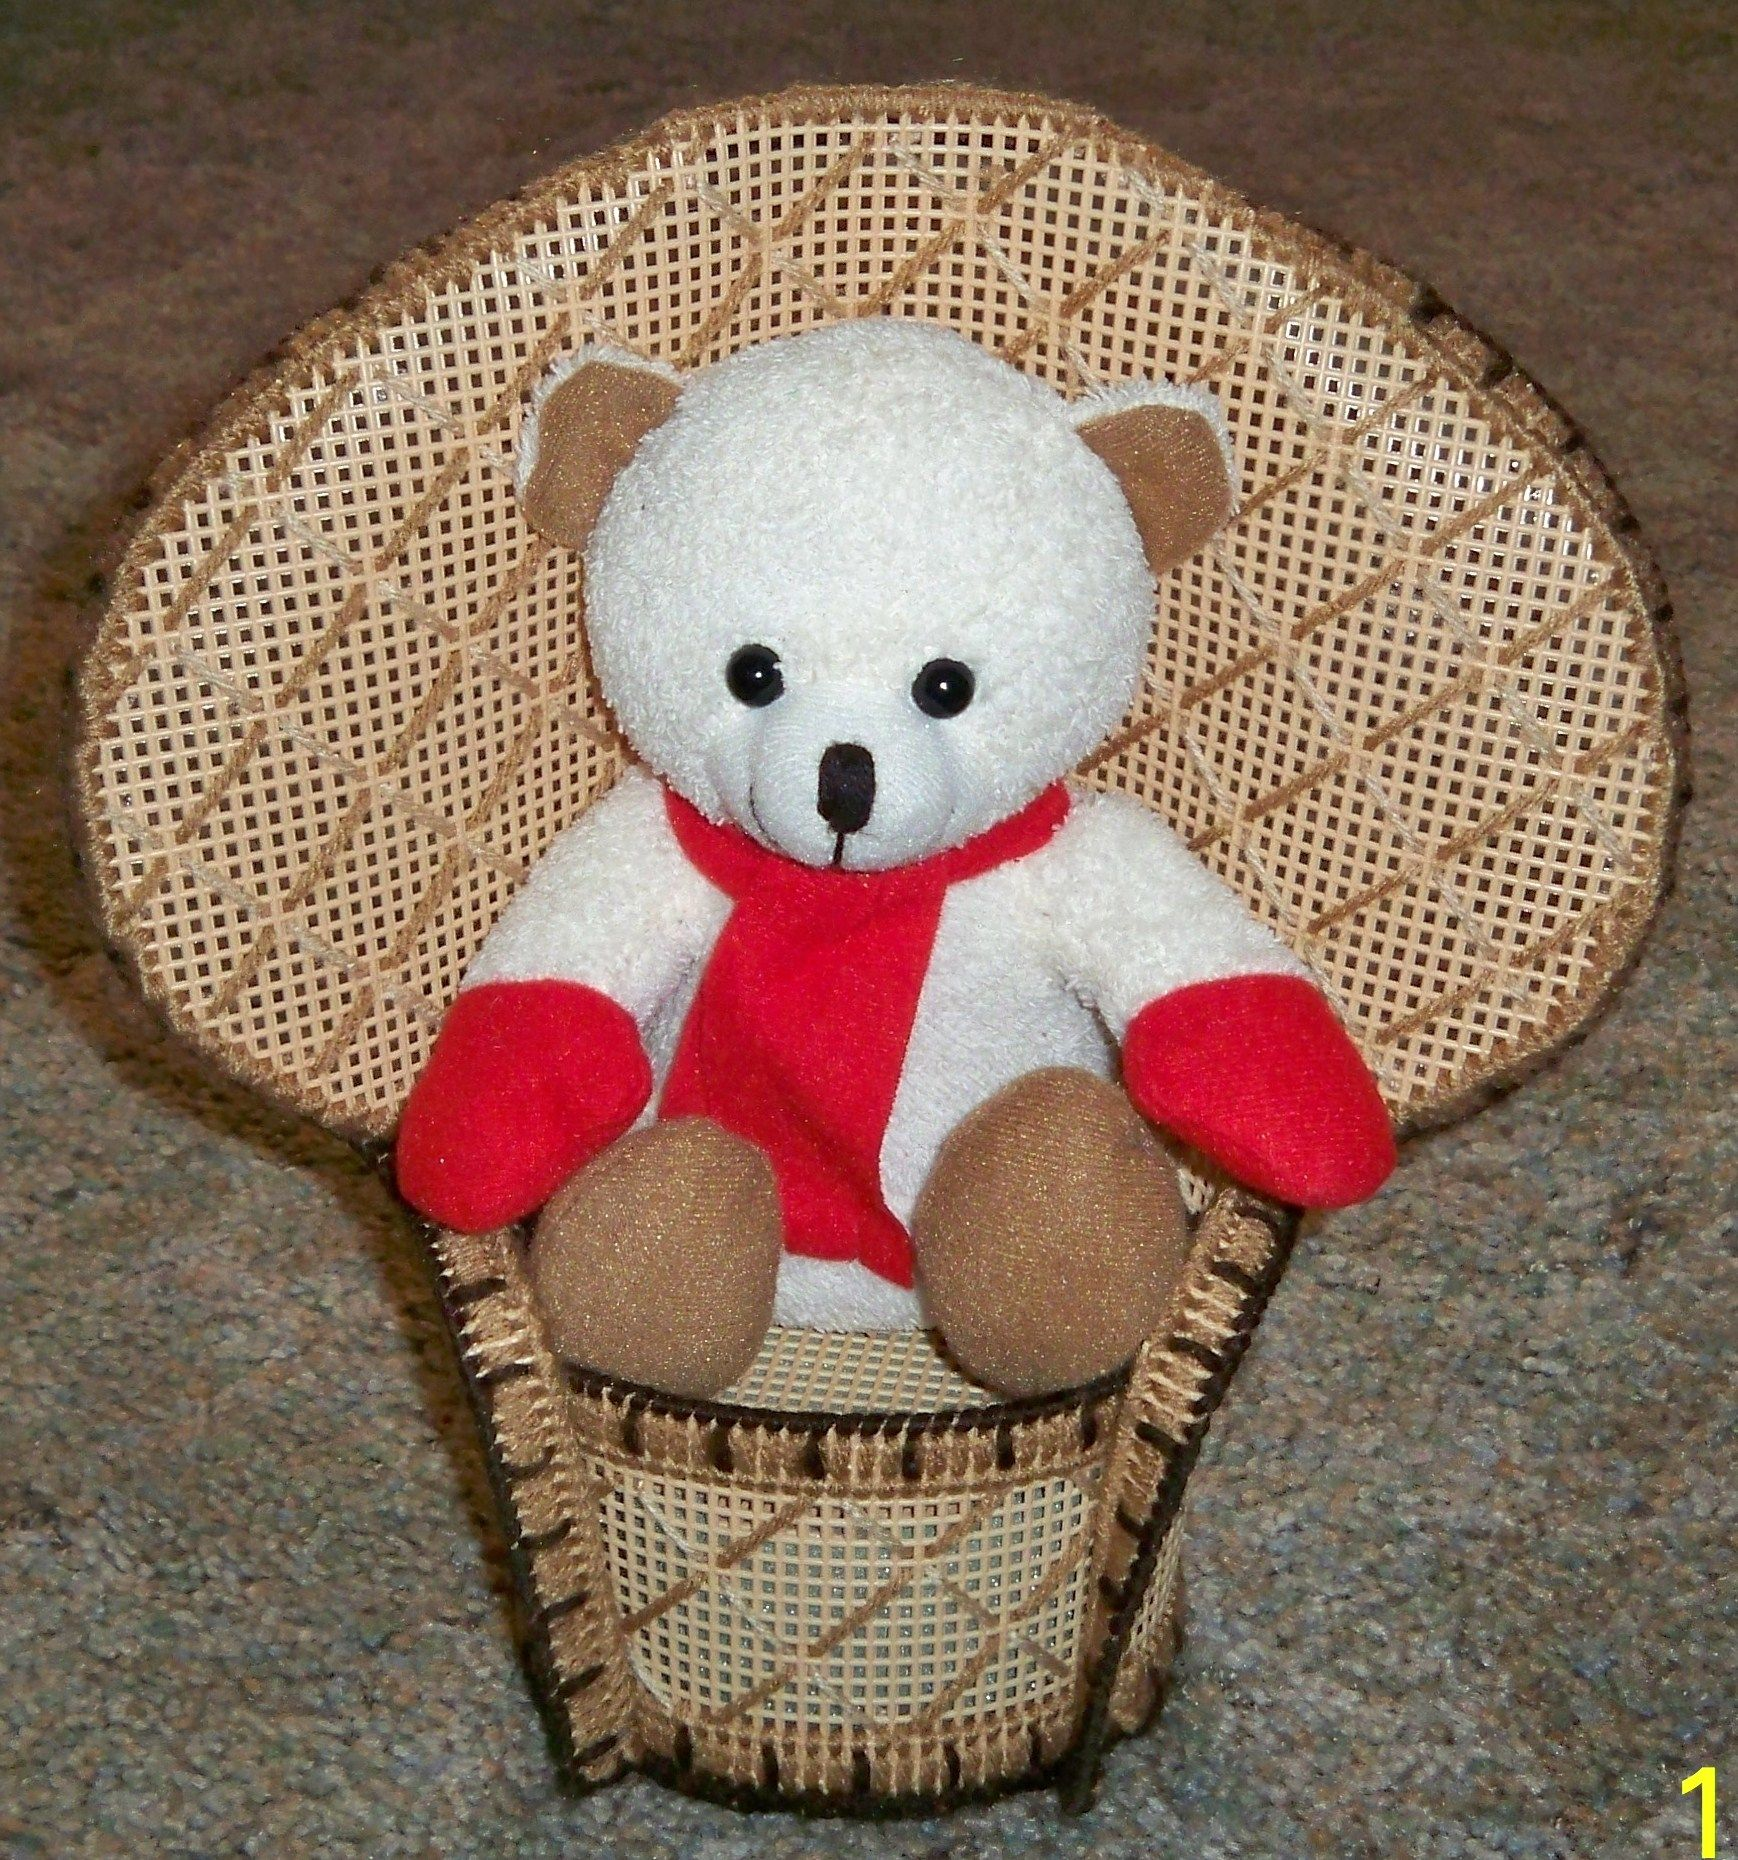 Wicker Chair Teddy Bear Plastic Canvas Patterns Plastic